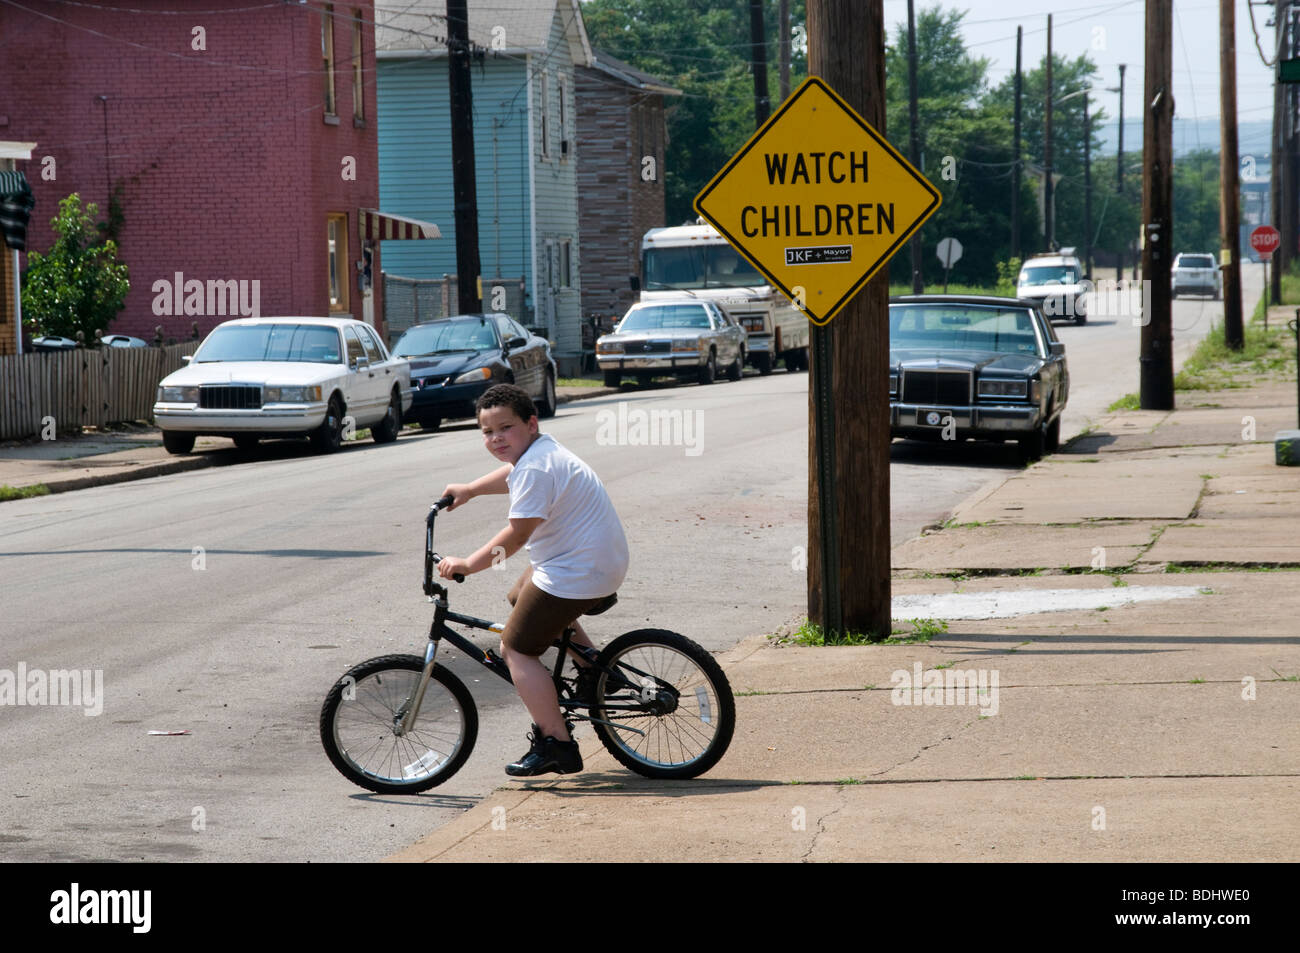 bored child bicycling - Stock Image